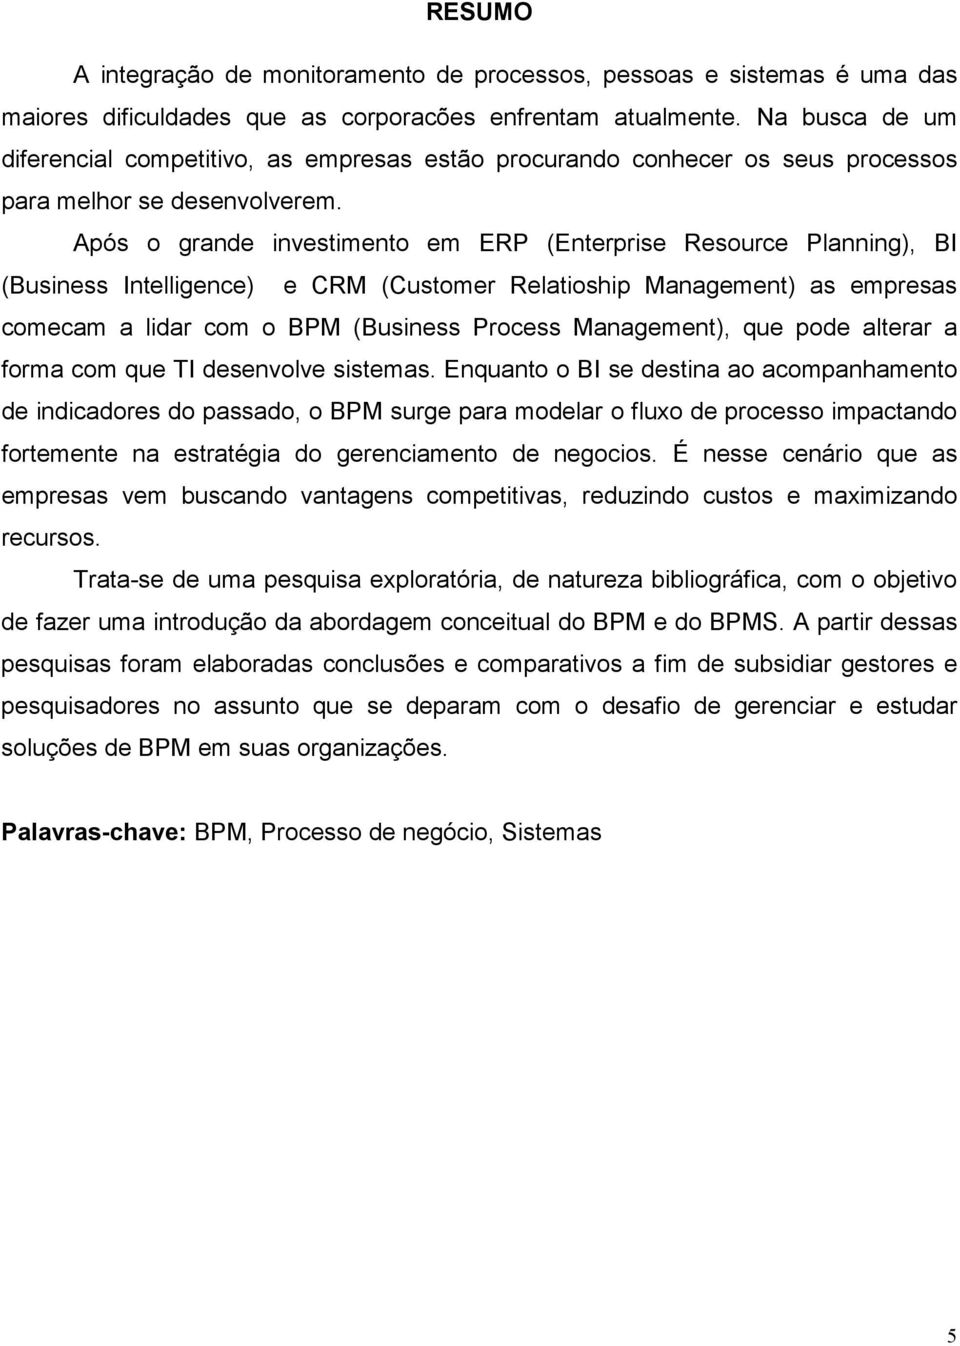 Após o grande investimento em ERP (Enterprise Resource Planning), BI (Business Intelligence) e CRM (Customer Relatioship Management) as empresas comecam a lidar com o BPM (Business Process